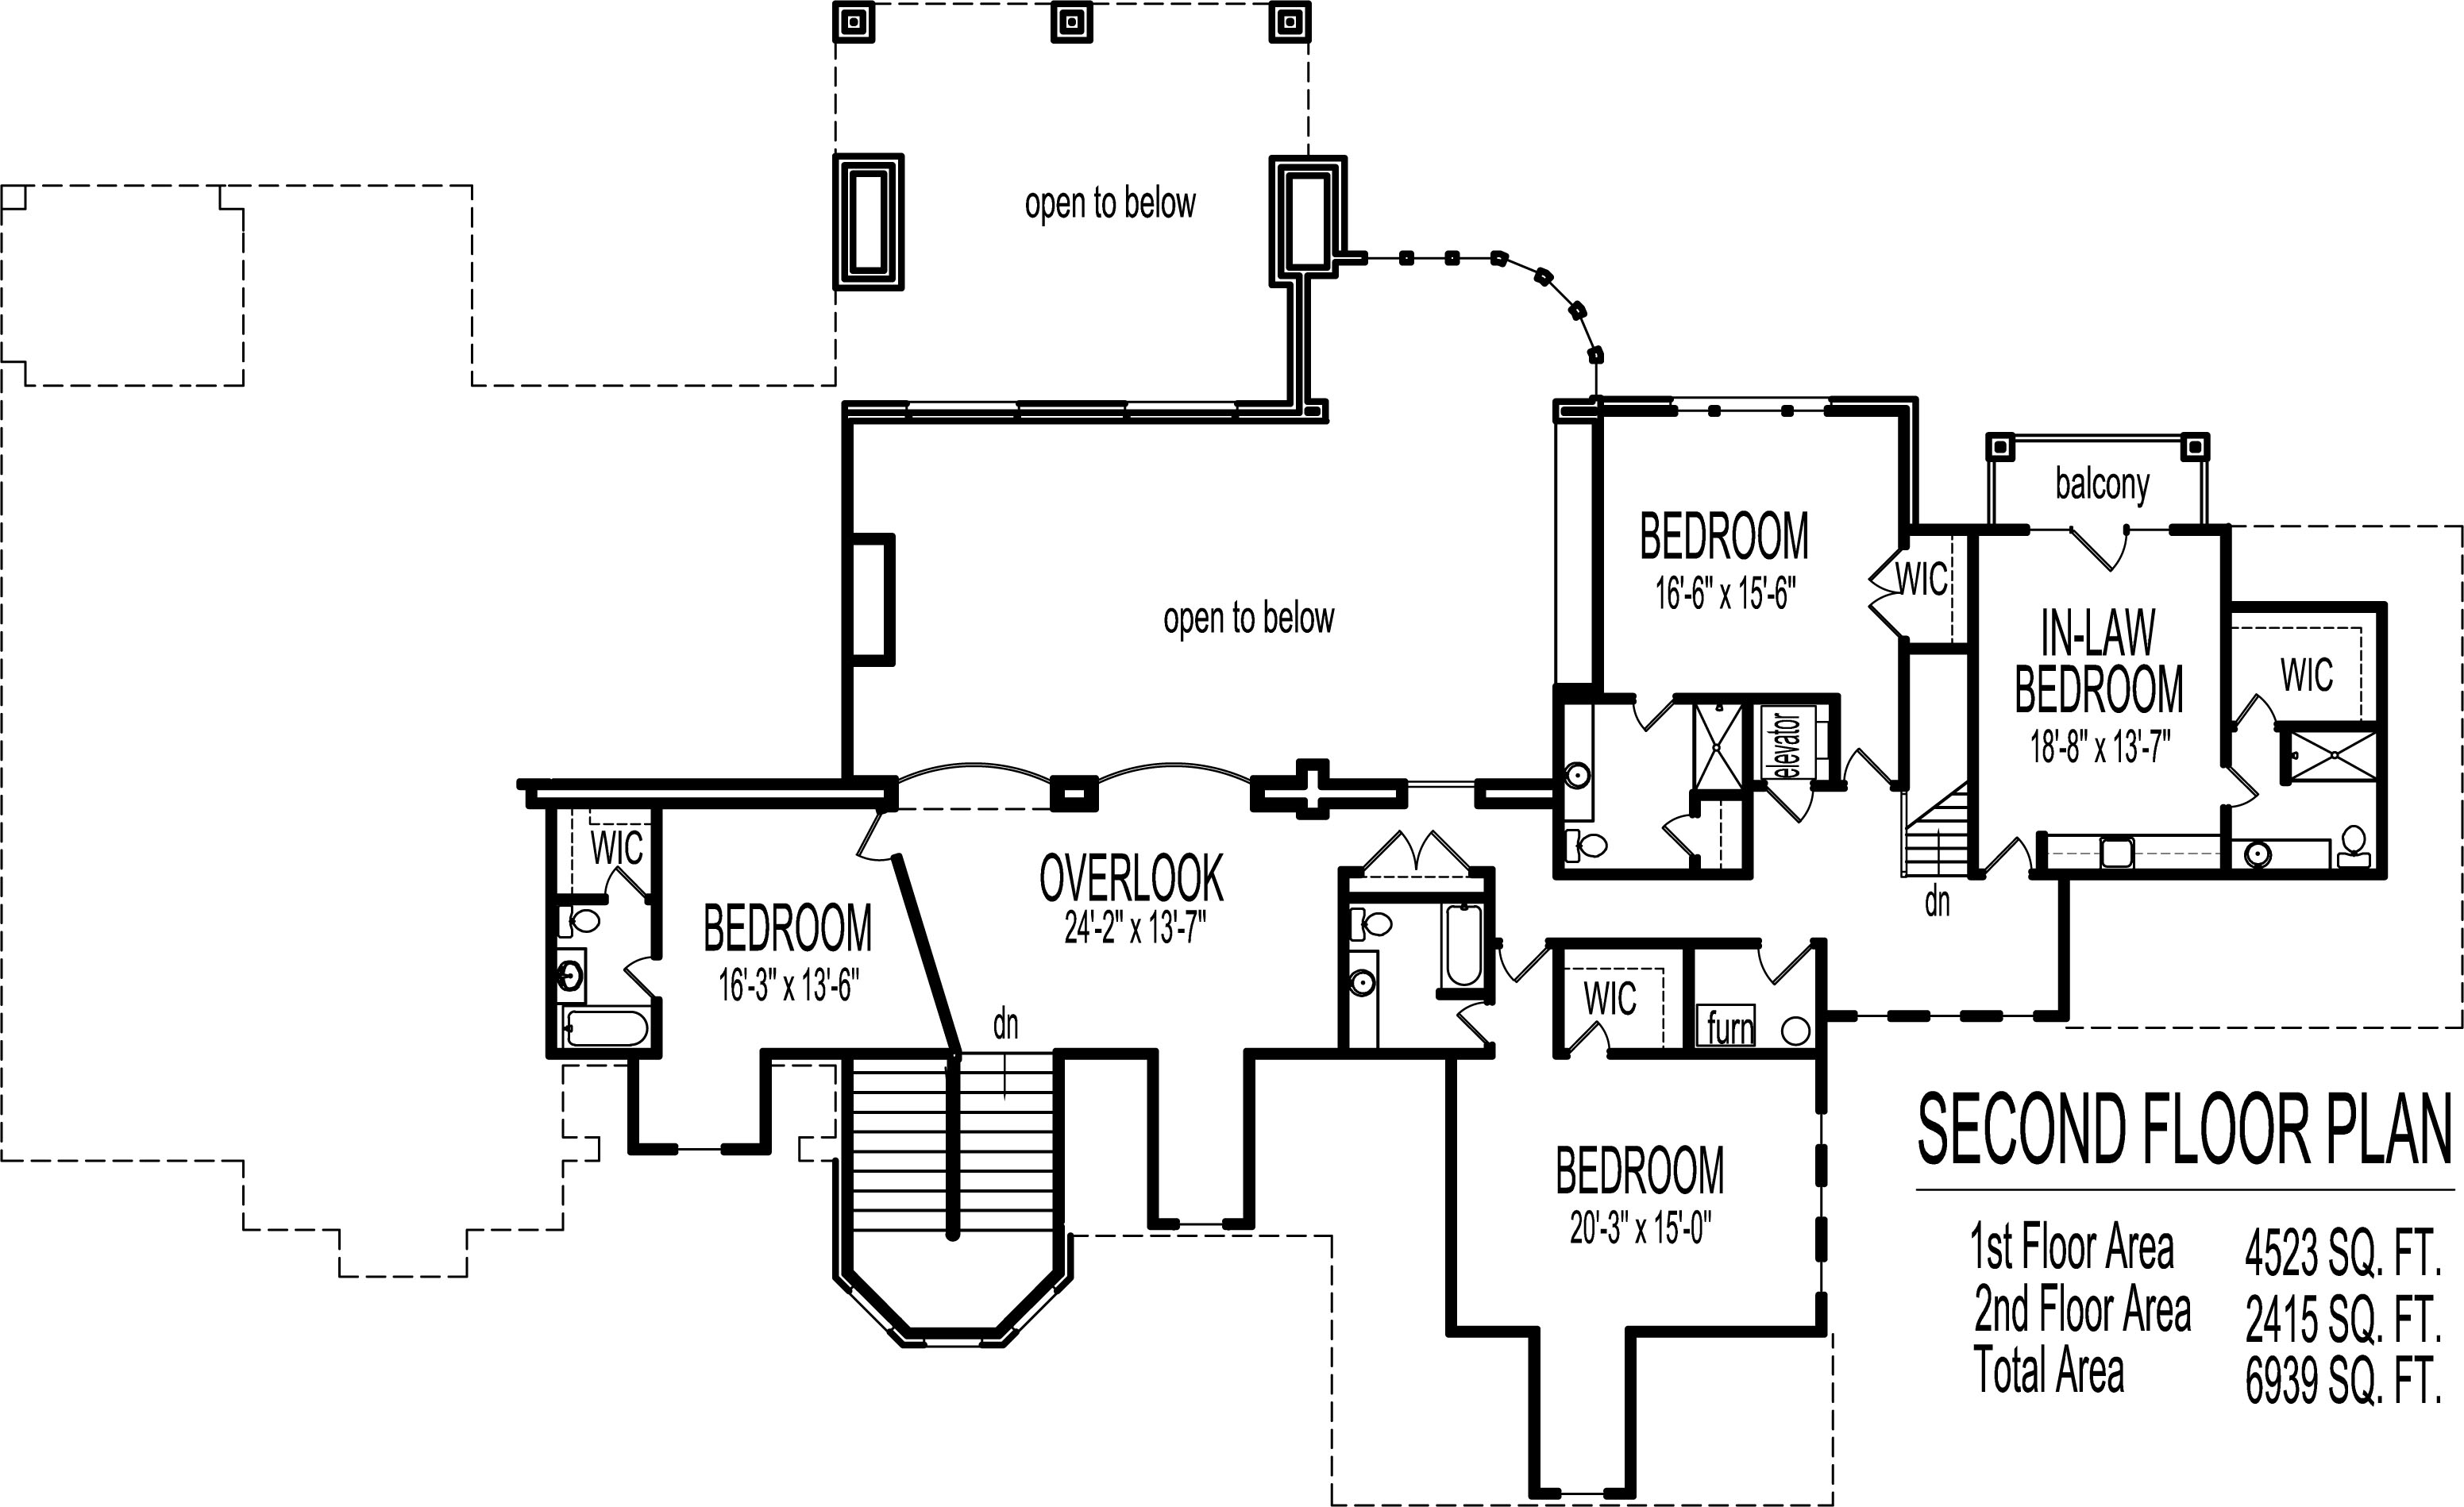 Dream house floor plans blueprints 2 story 5 bedroom large for House blueprints